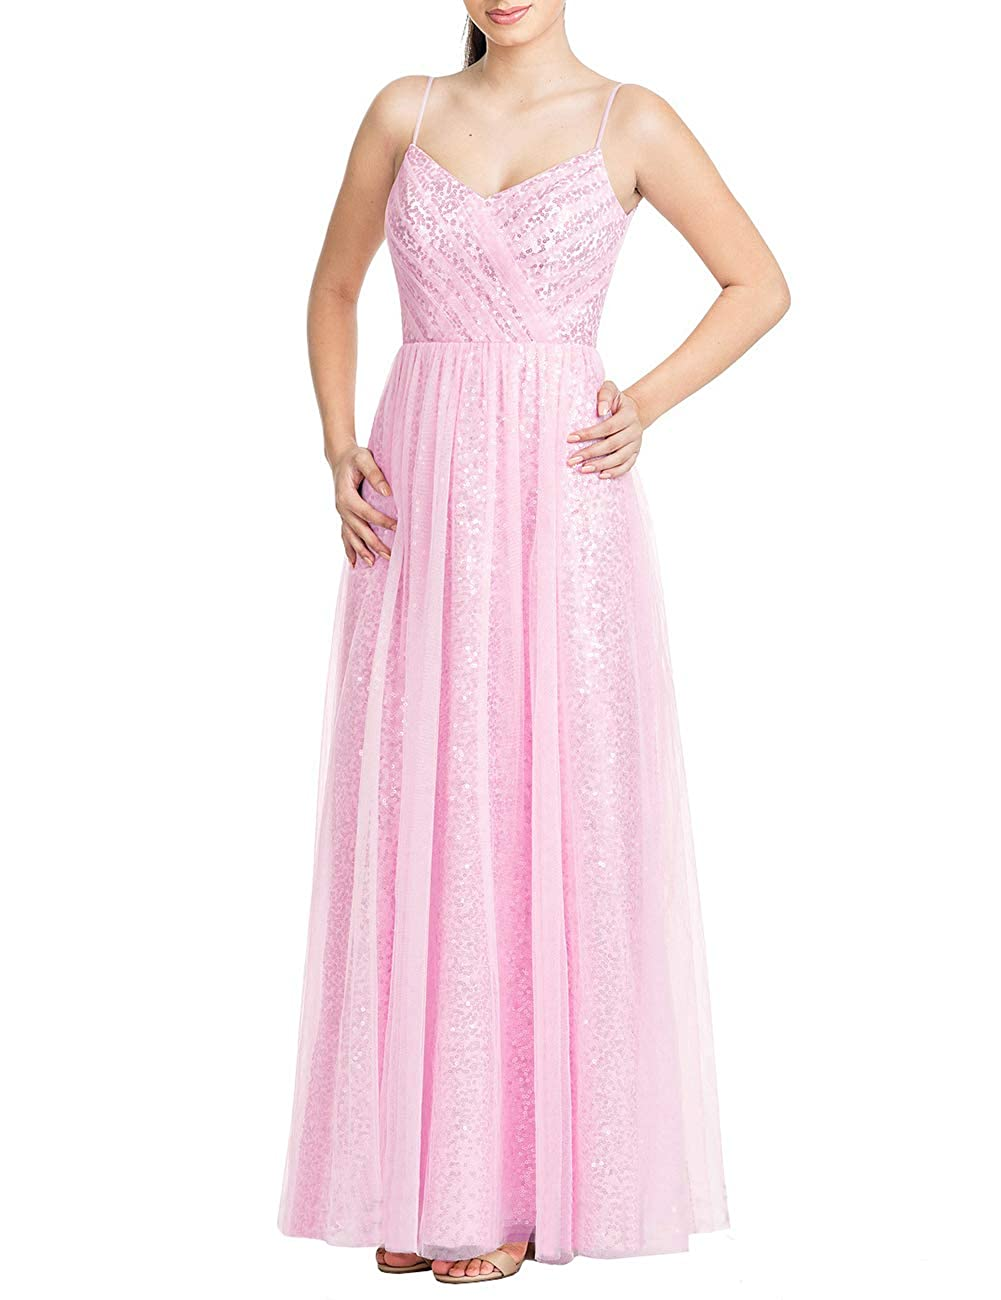 Pink Uther Long Bridesmaid Dresses Sequins Spaghetti Straps Formal Evening Party Prom Gown